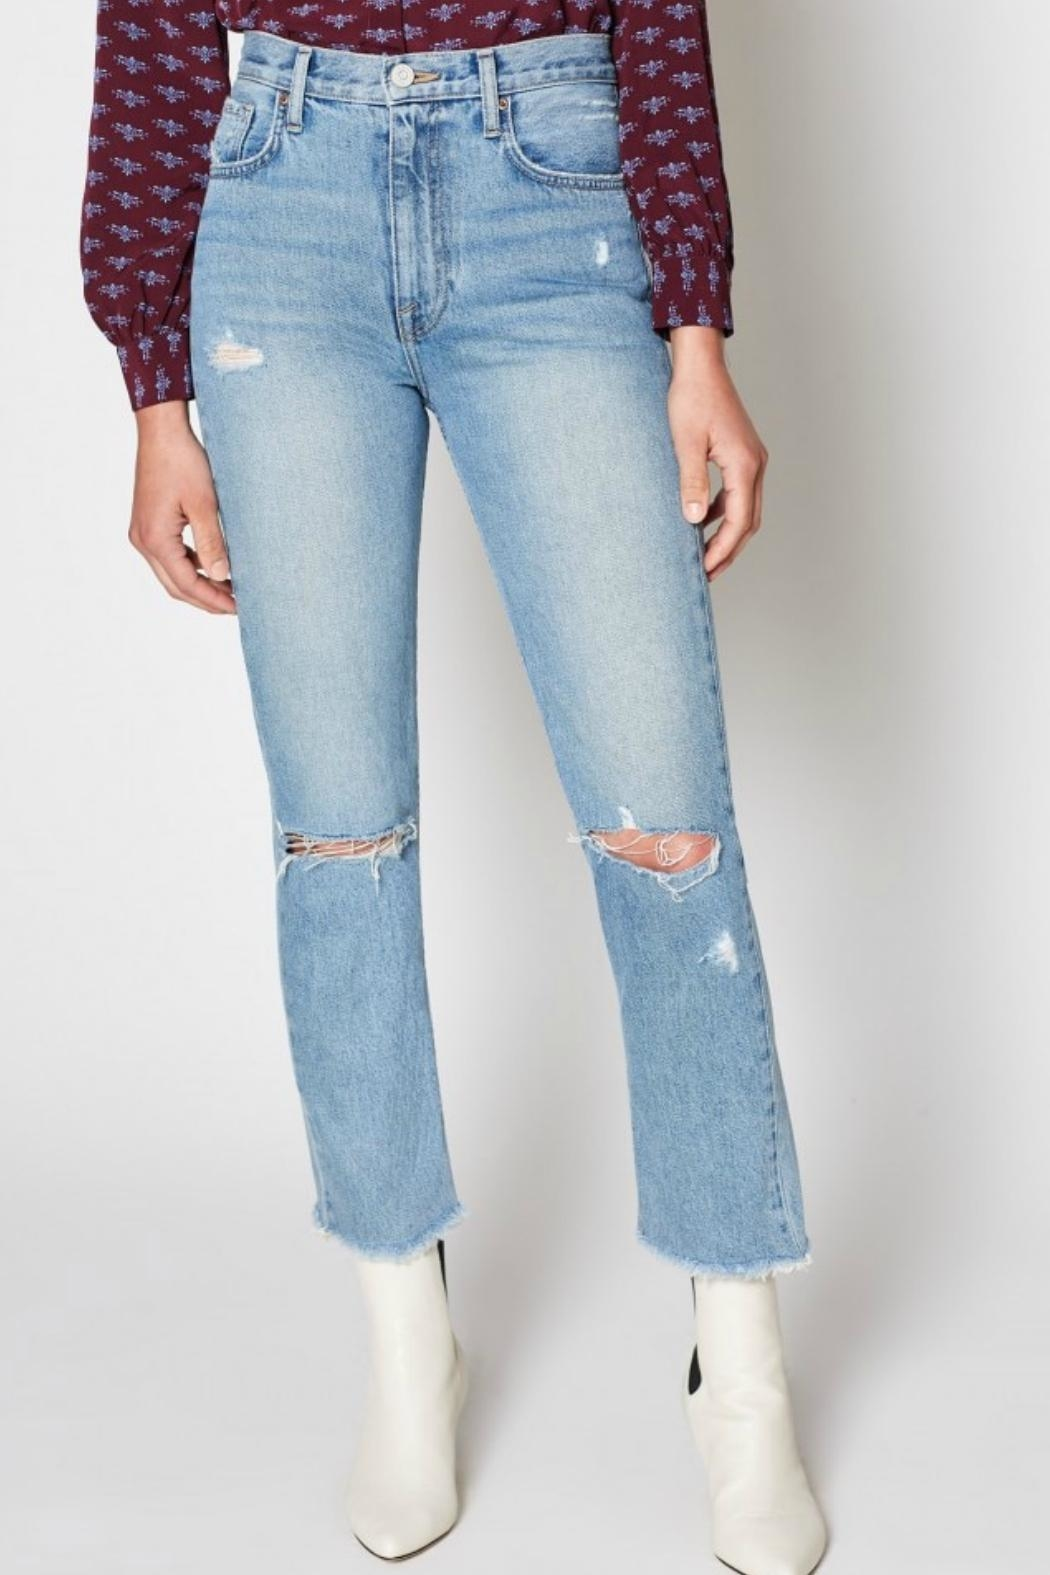 Joie Weslyn Distressed Jeans - Main Image